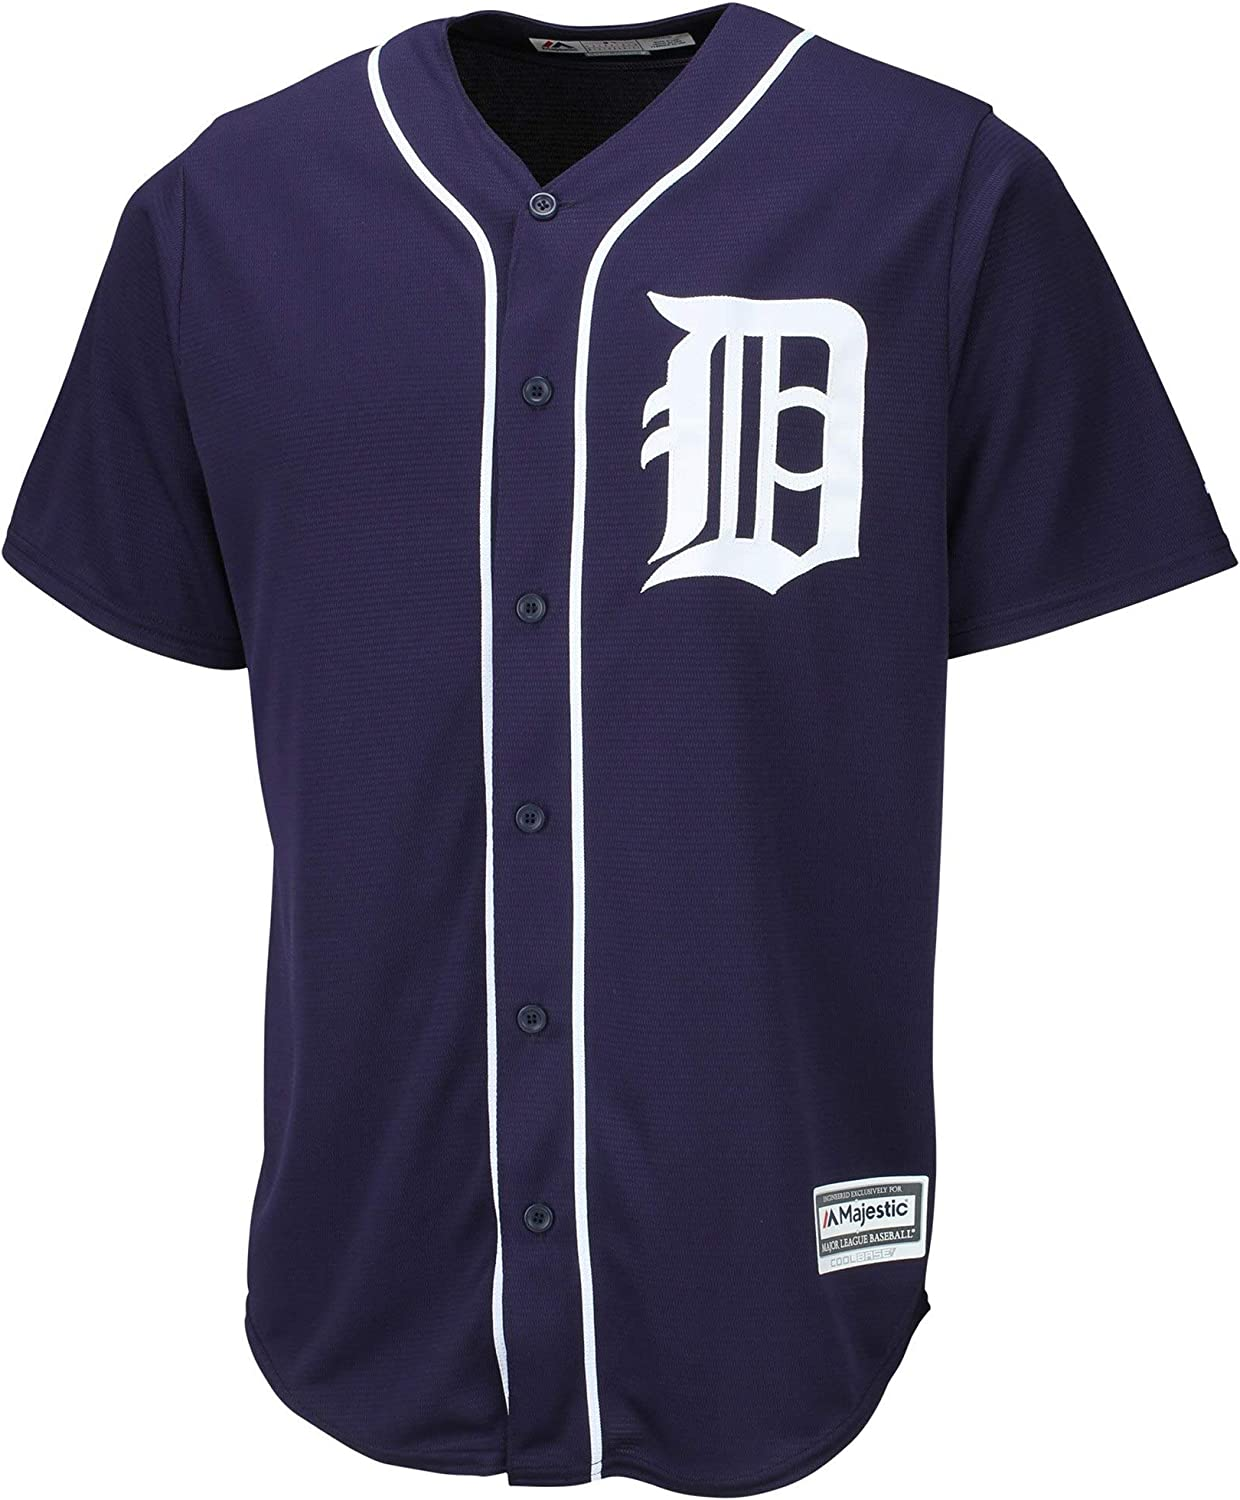 Miguel Cabrera Detroit Tigers #24 Navy Youth 8-20 Alternate Cool Base Player Jersey